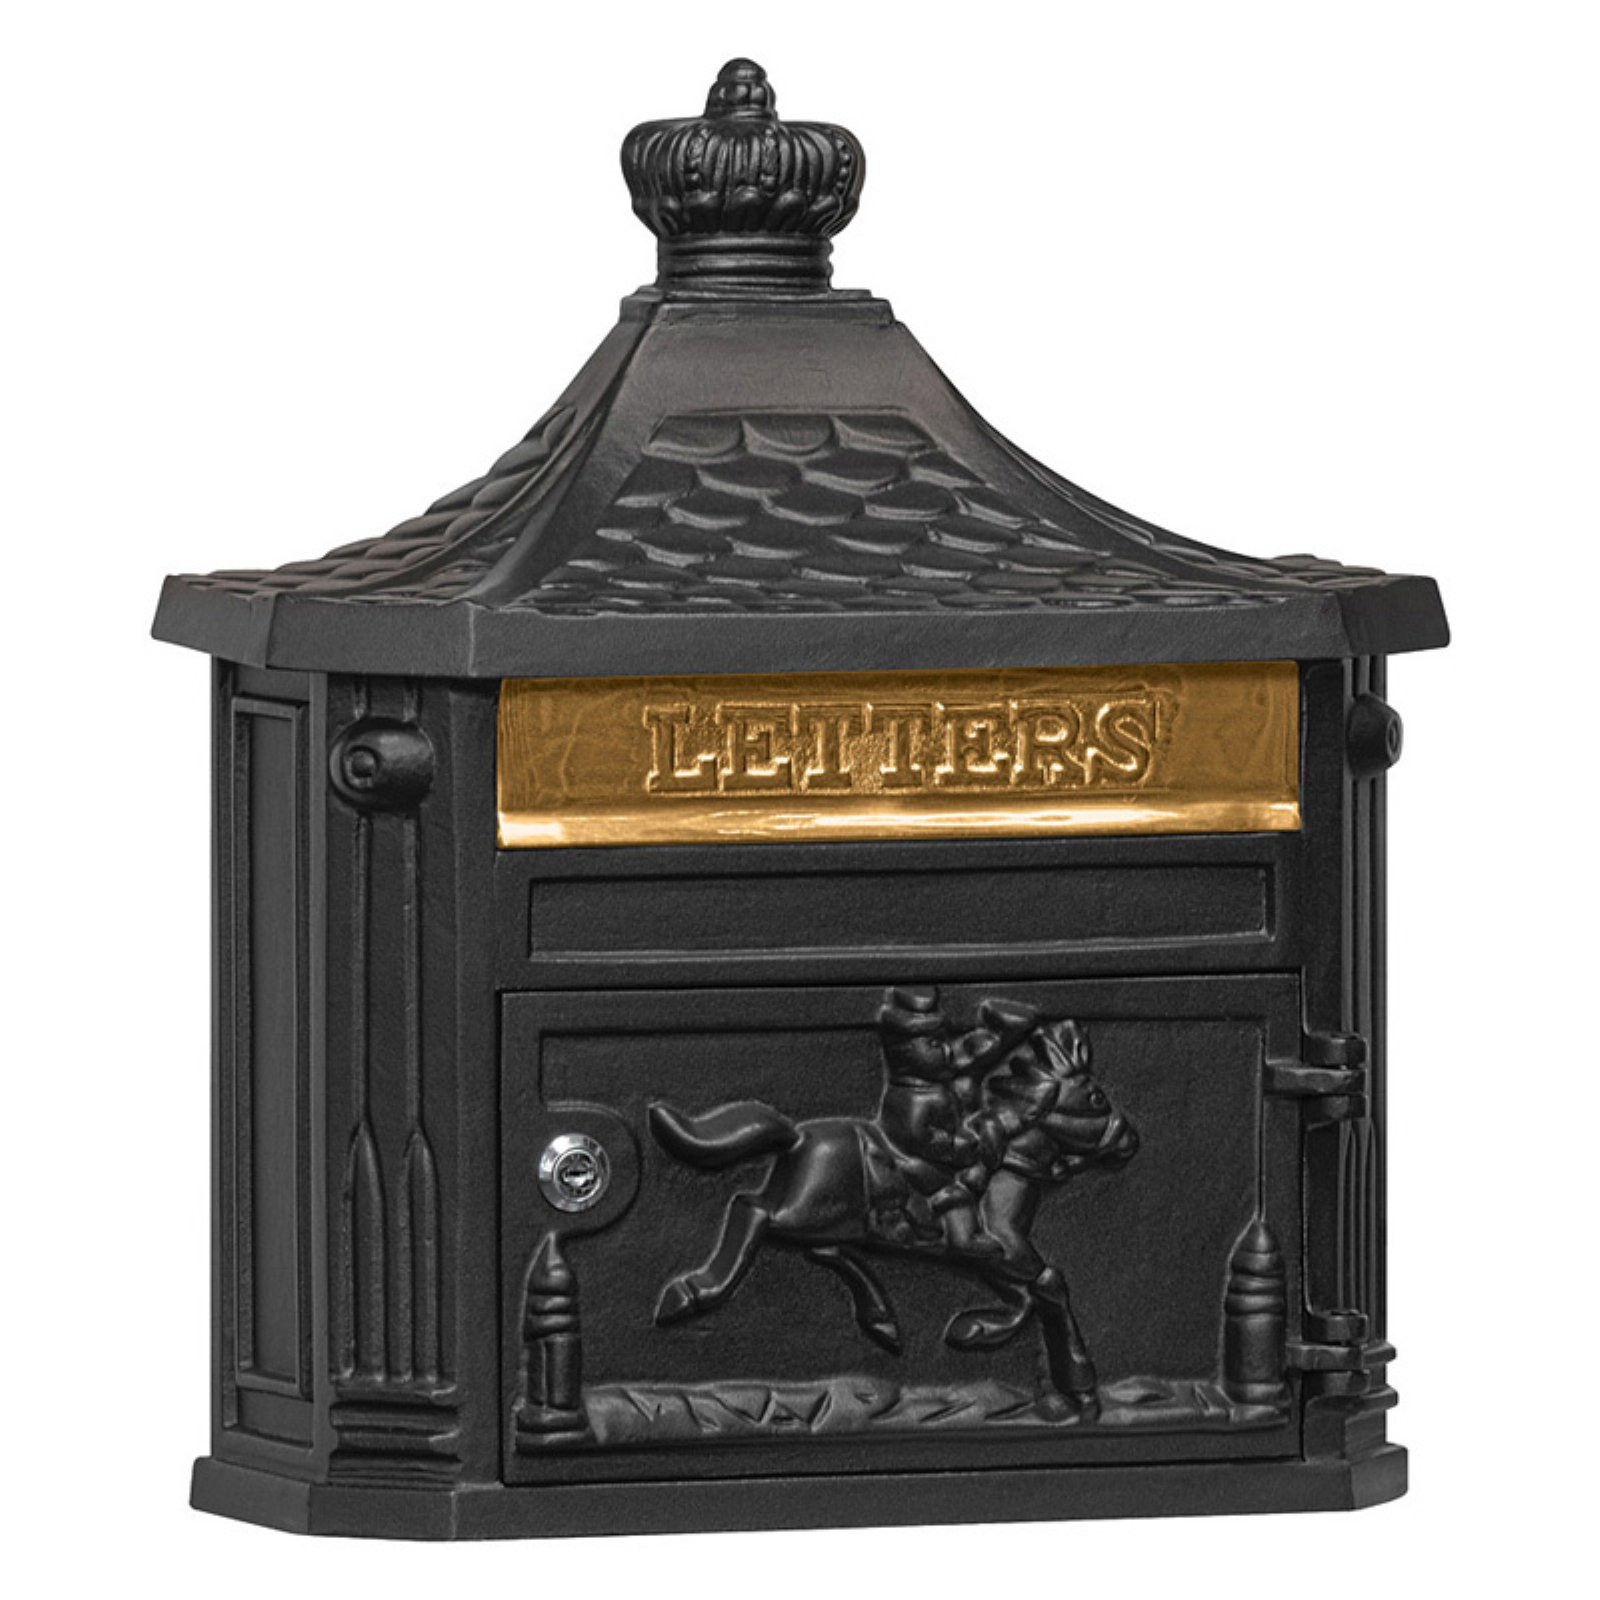 Salsbury Industries Victorian Mailbox, Surface Mounted by Salsbury industries